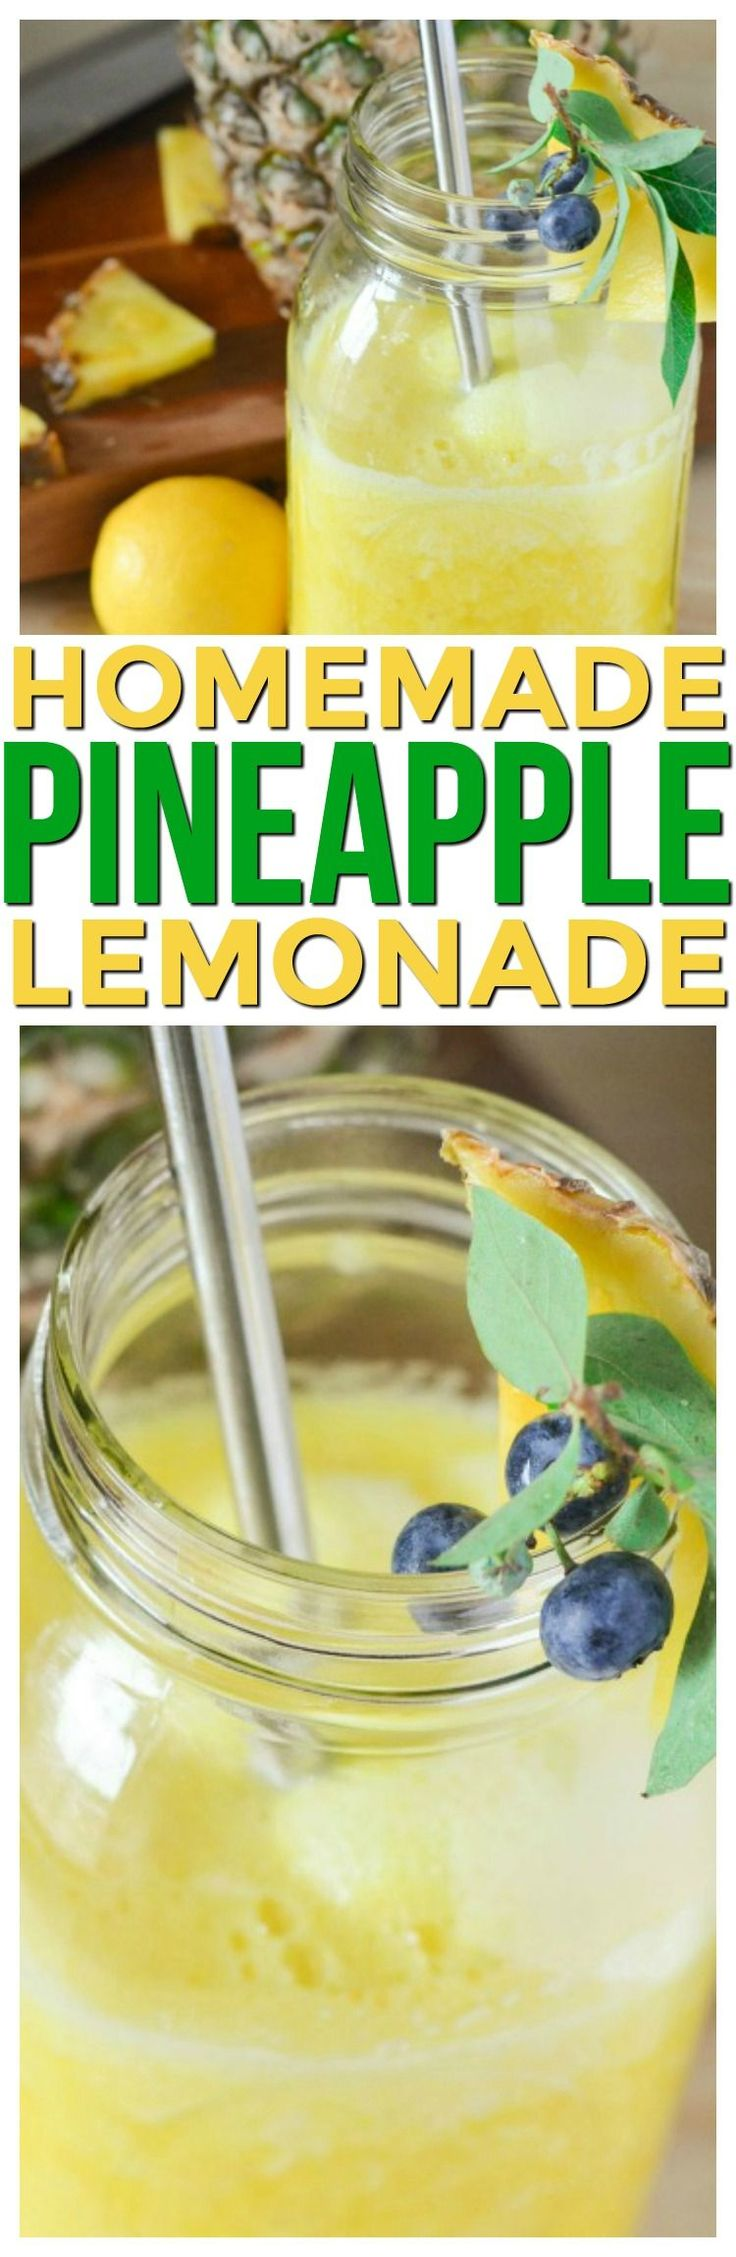 This frosty Pineapple Lemonade Recipe Homemade is perfection! Make it if you need a refreshing drink or homemade drink recipes nonalcoholic for kids it's a healthy summer beverage. via @KnowYourProduce (summertime drinks)